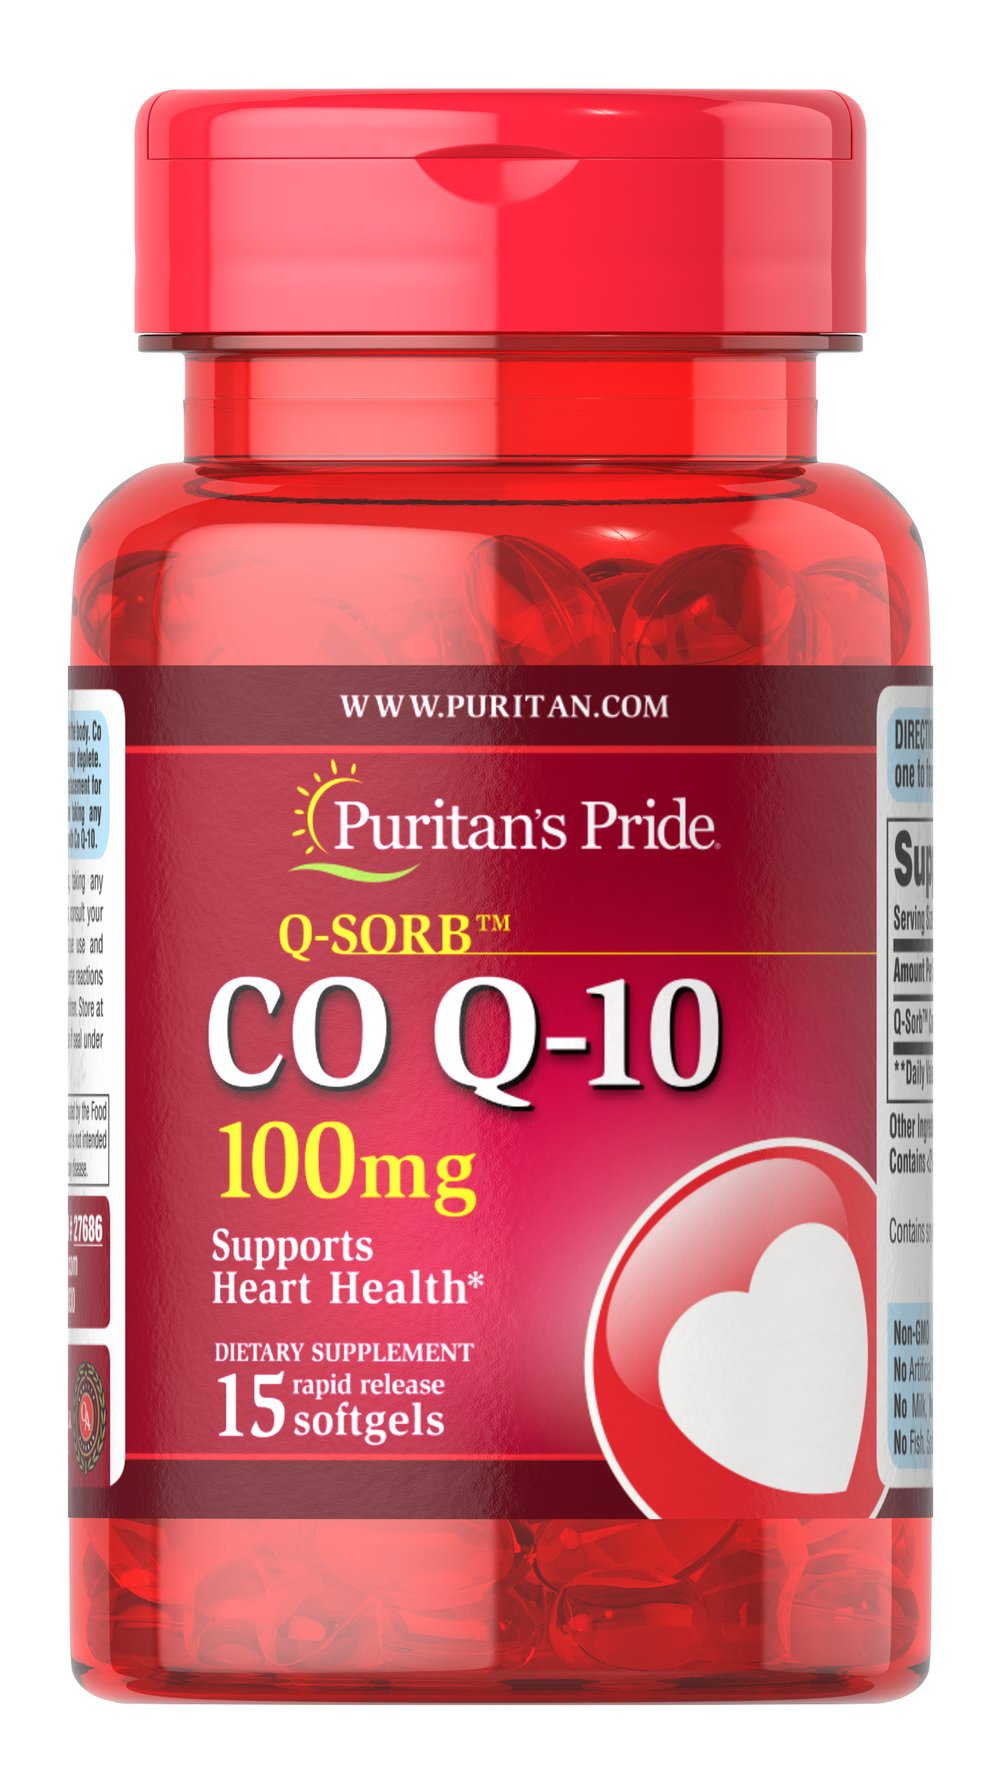 Q-SORB™ Co Q-10 100 mg  Trial Size Thumbnail Alternate Bottle View